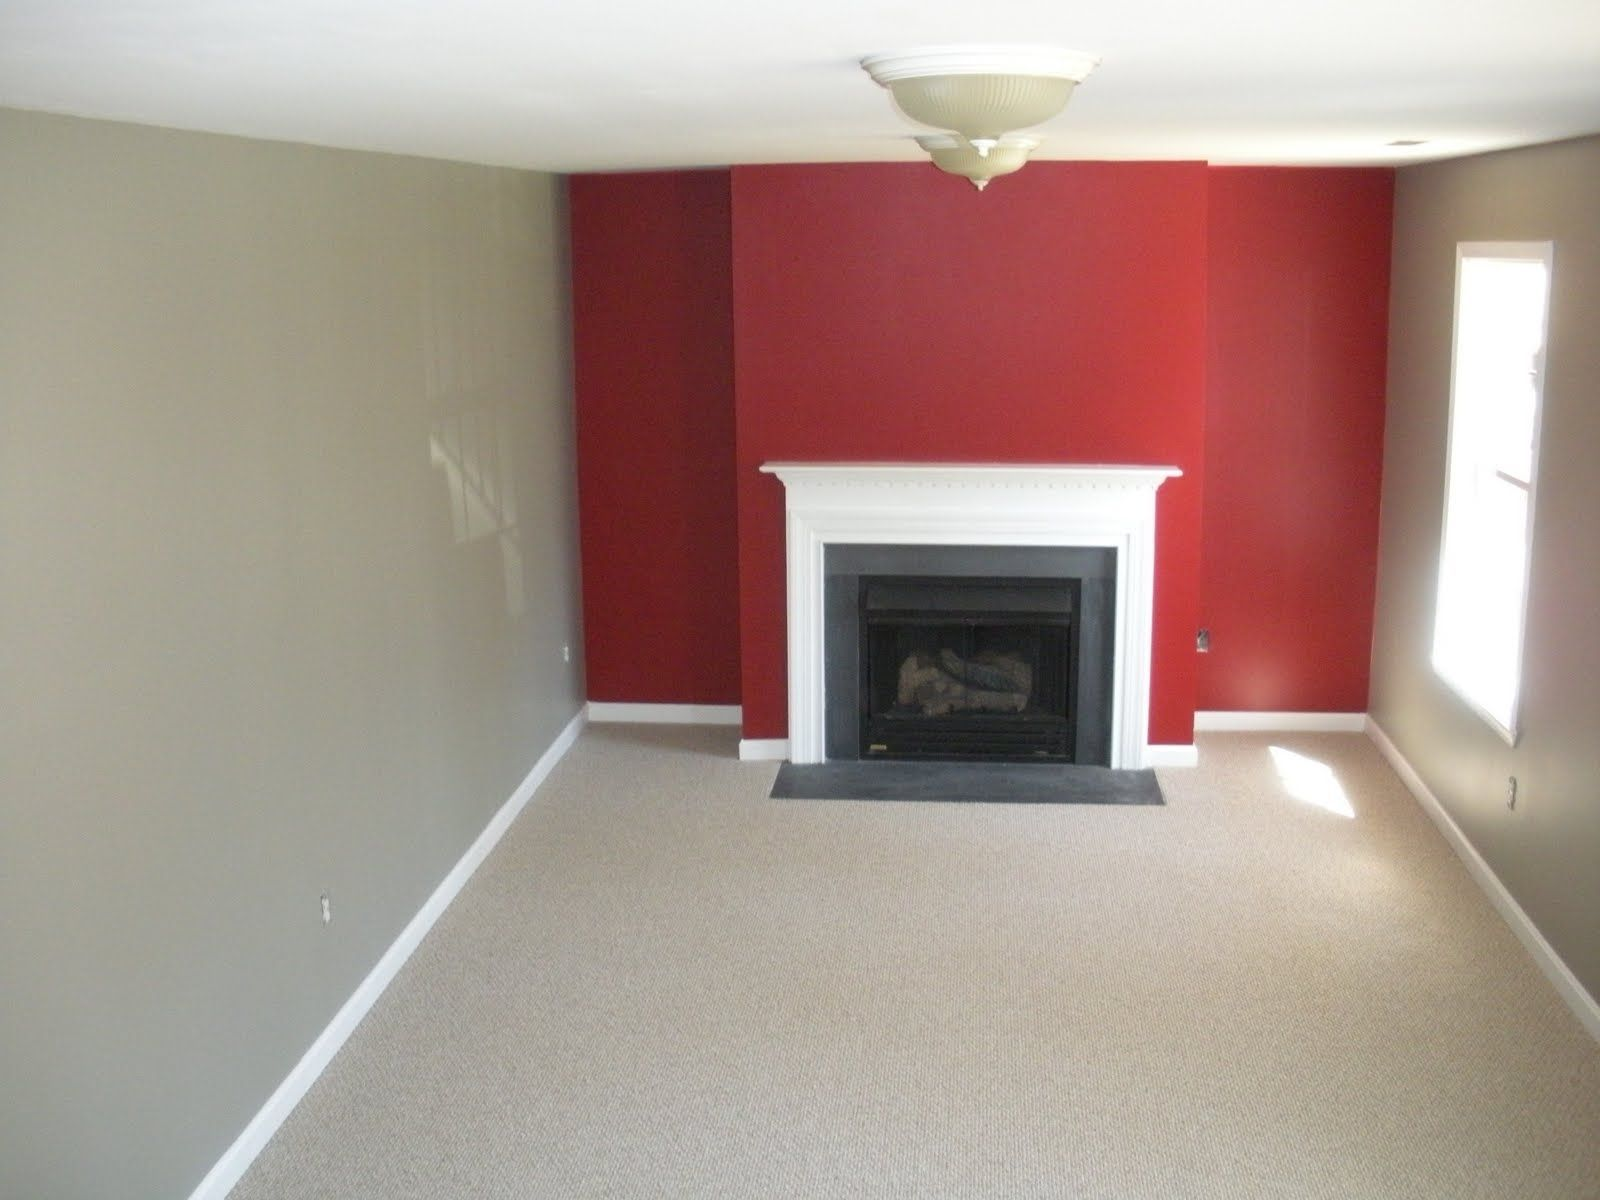 Dining Room One Red Accent Wall Taupe Google Search Red Accent Wall Living Room Red Accent Walls In Living Room